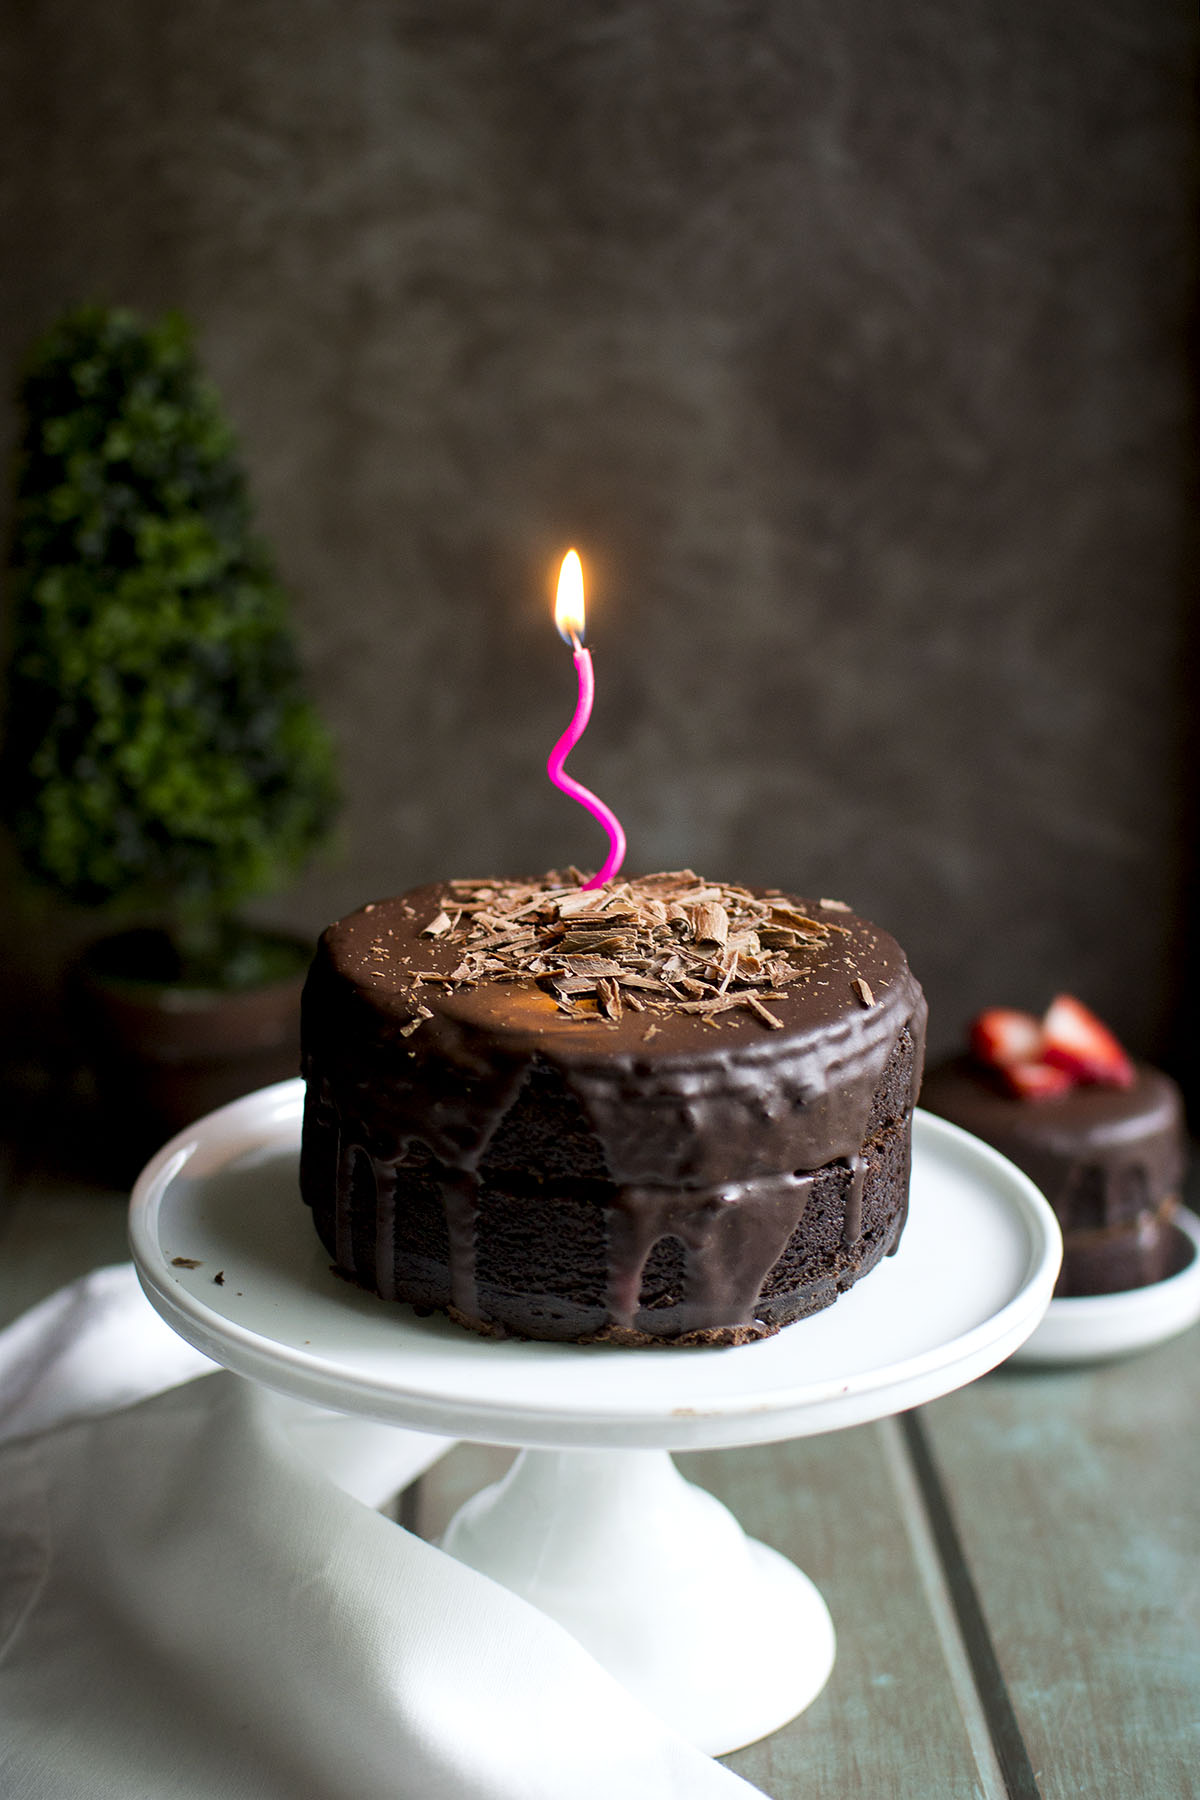 White cake stand with vegan chocolate cake with a lit candle on top